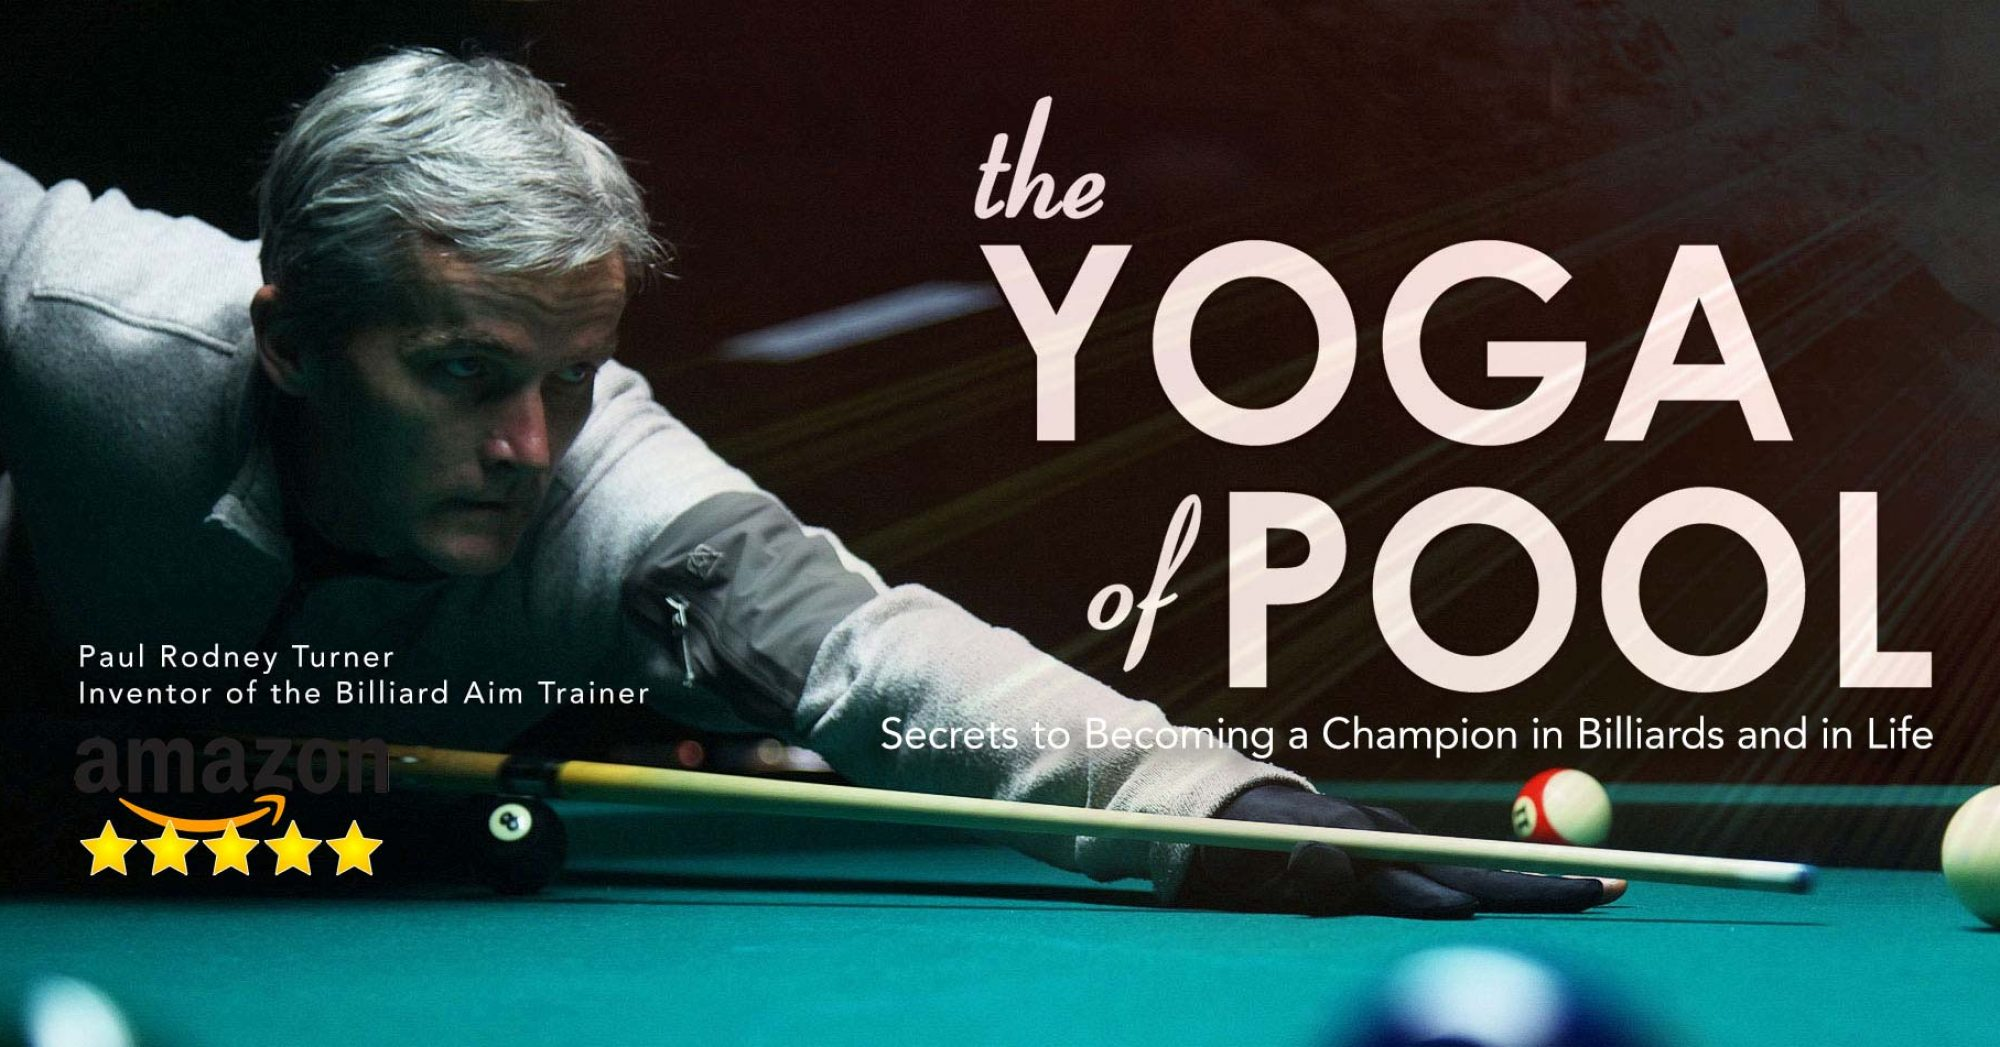 Introduction | The Yoga of Pool